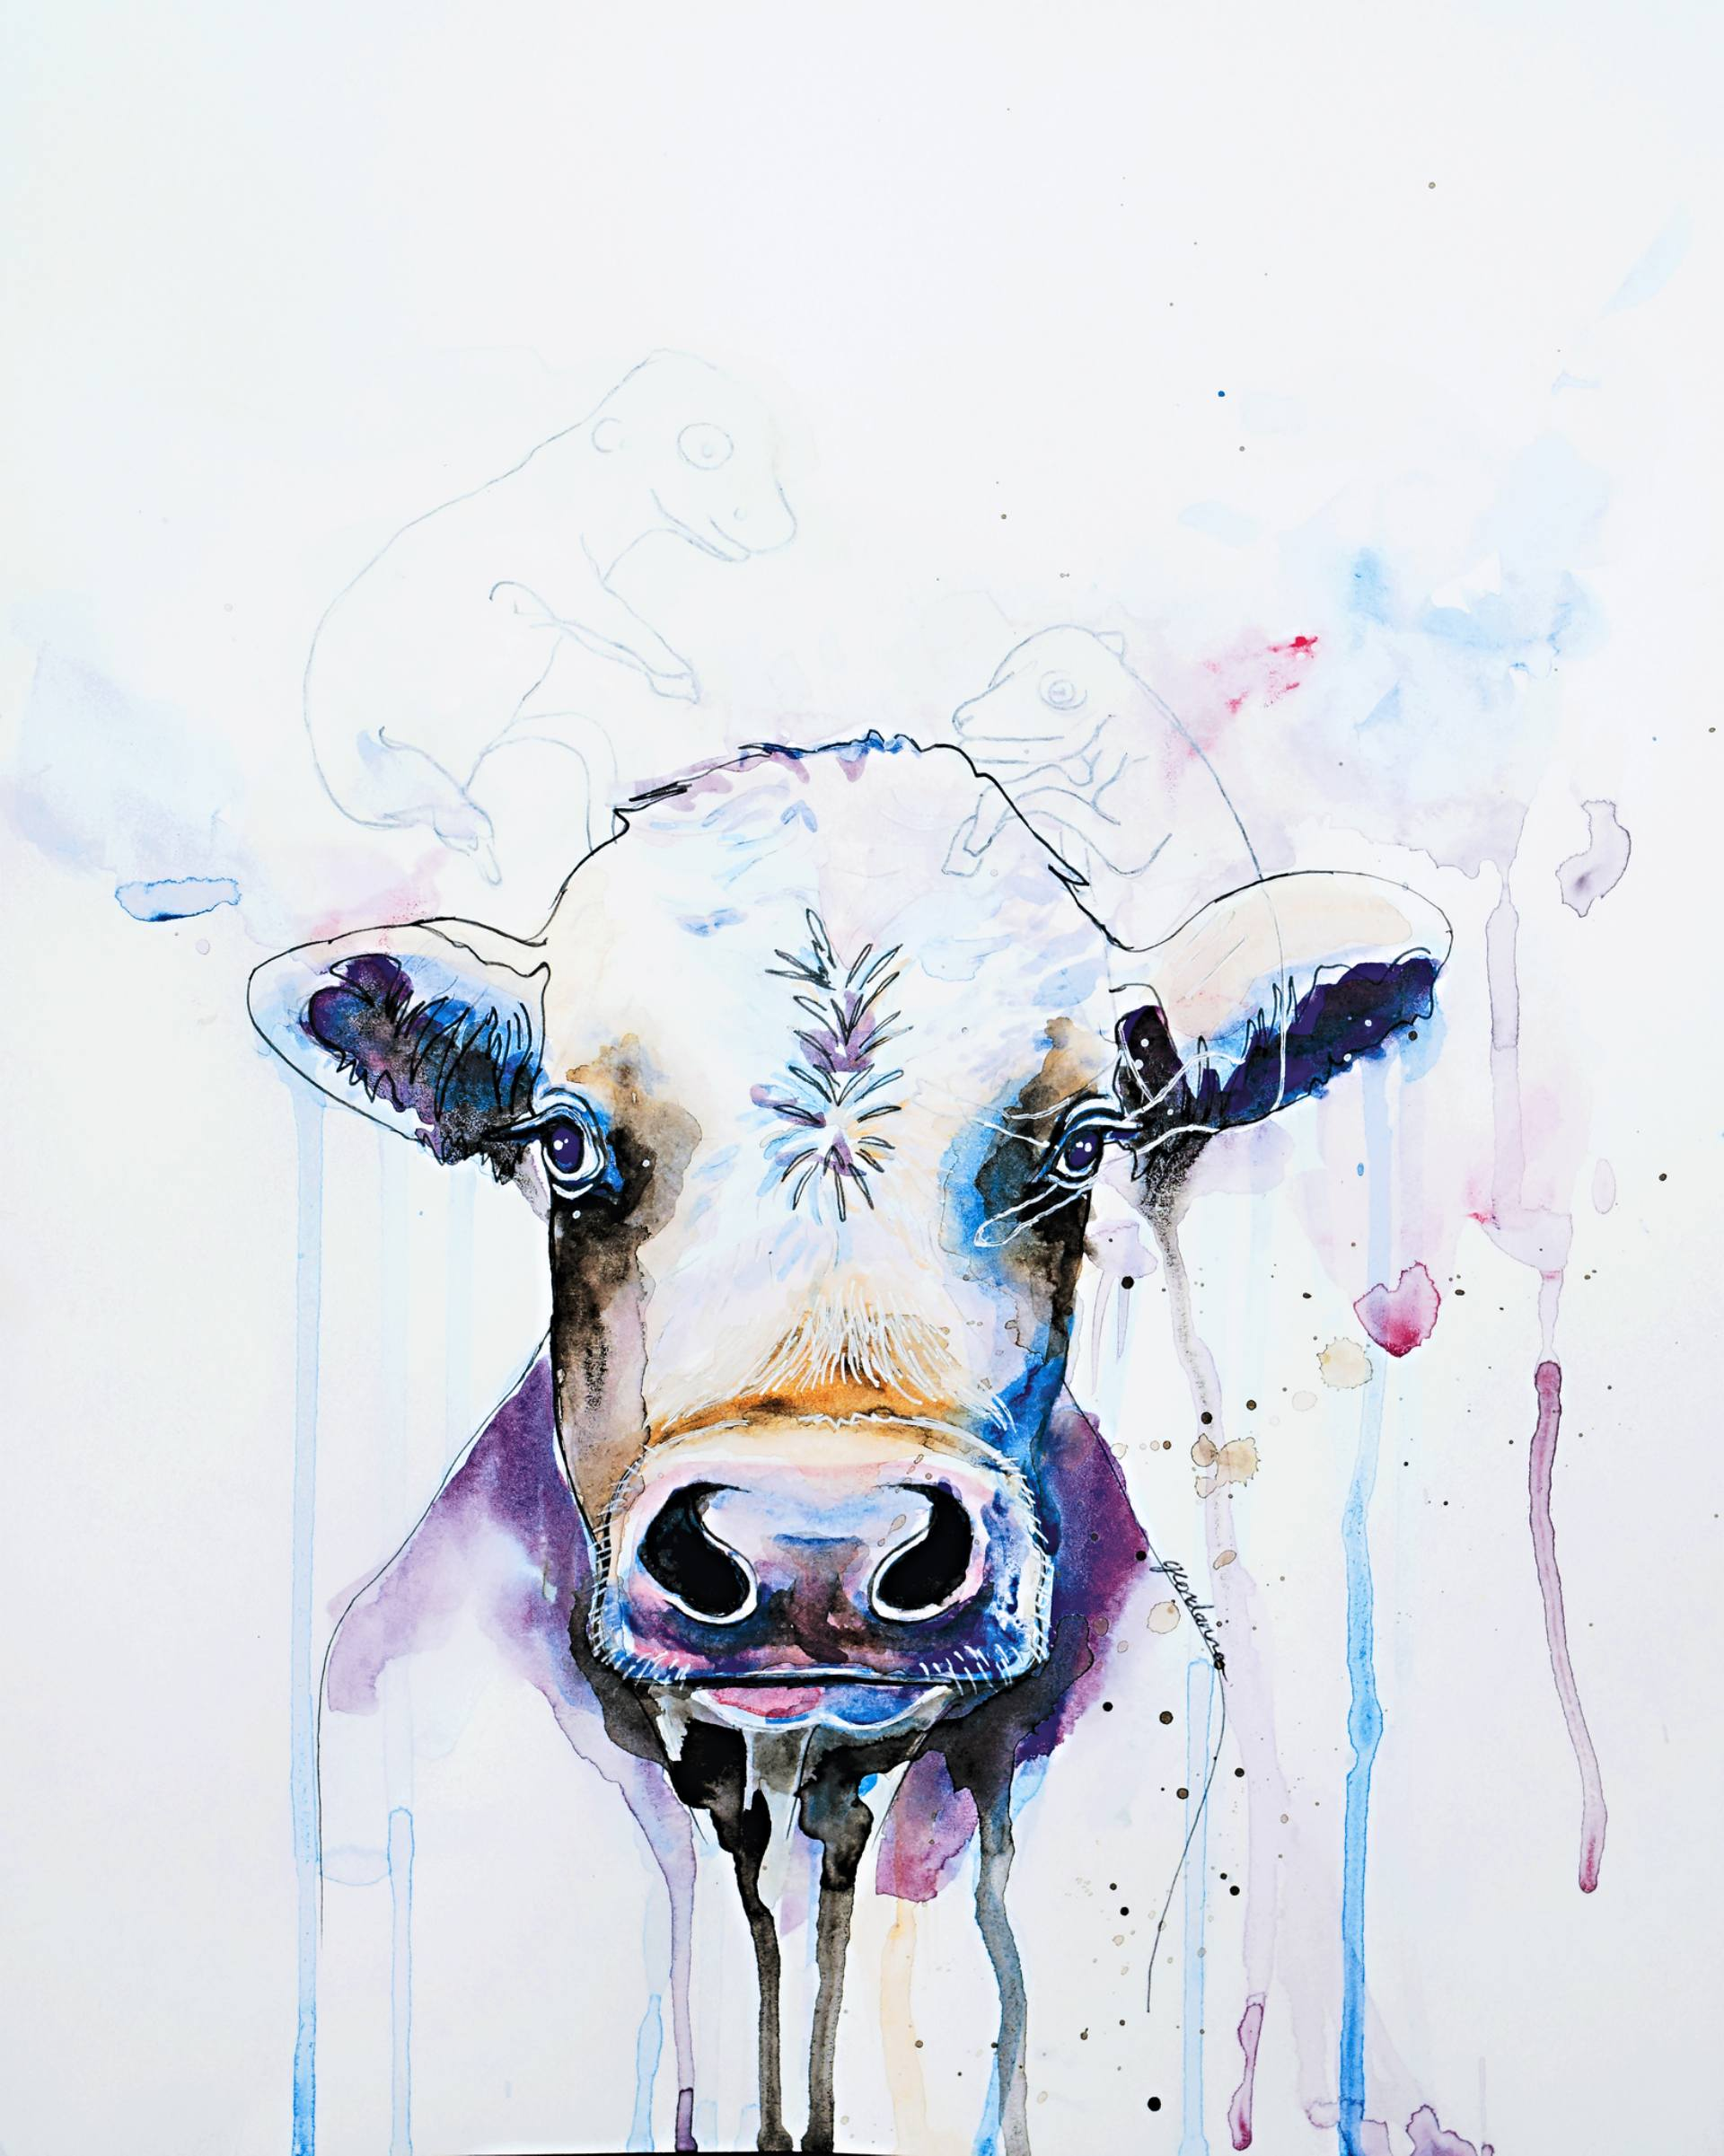 Cow and Fetus - Geordanna Cordero-Fields